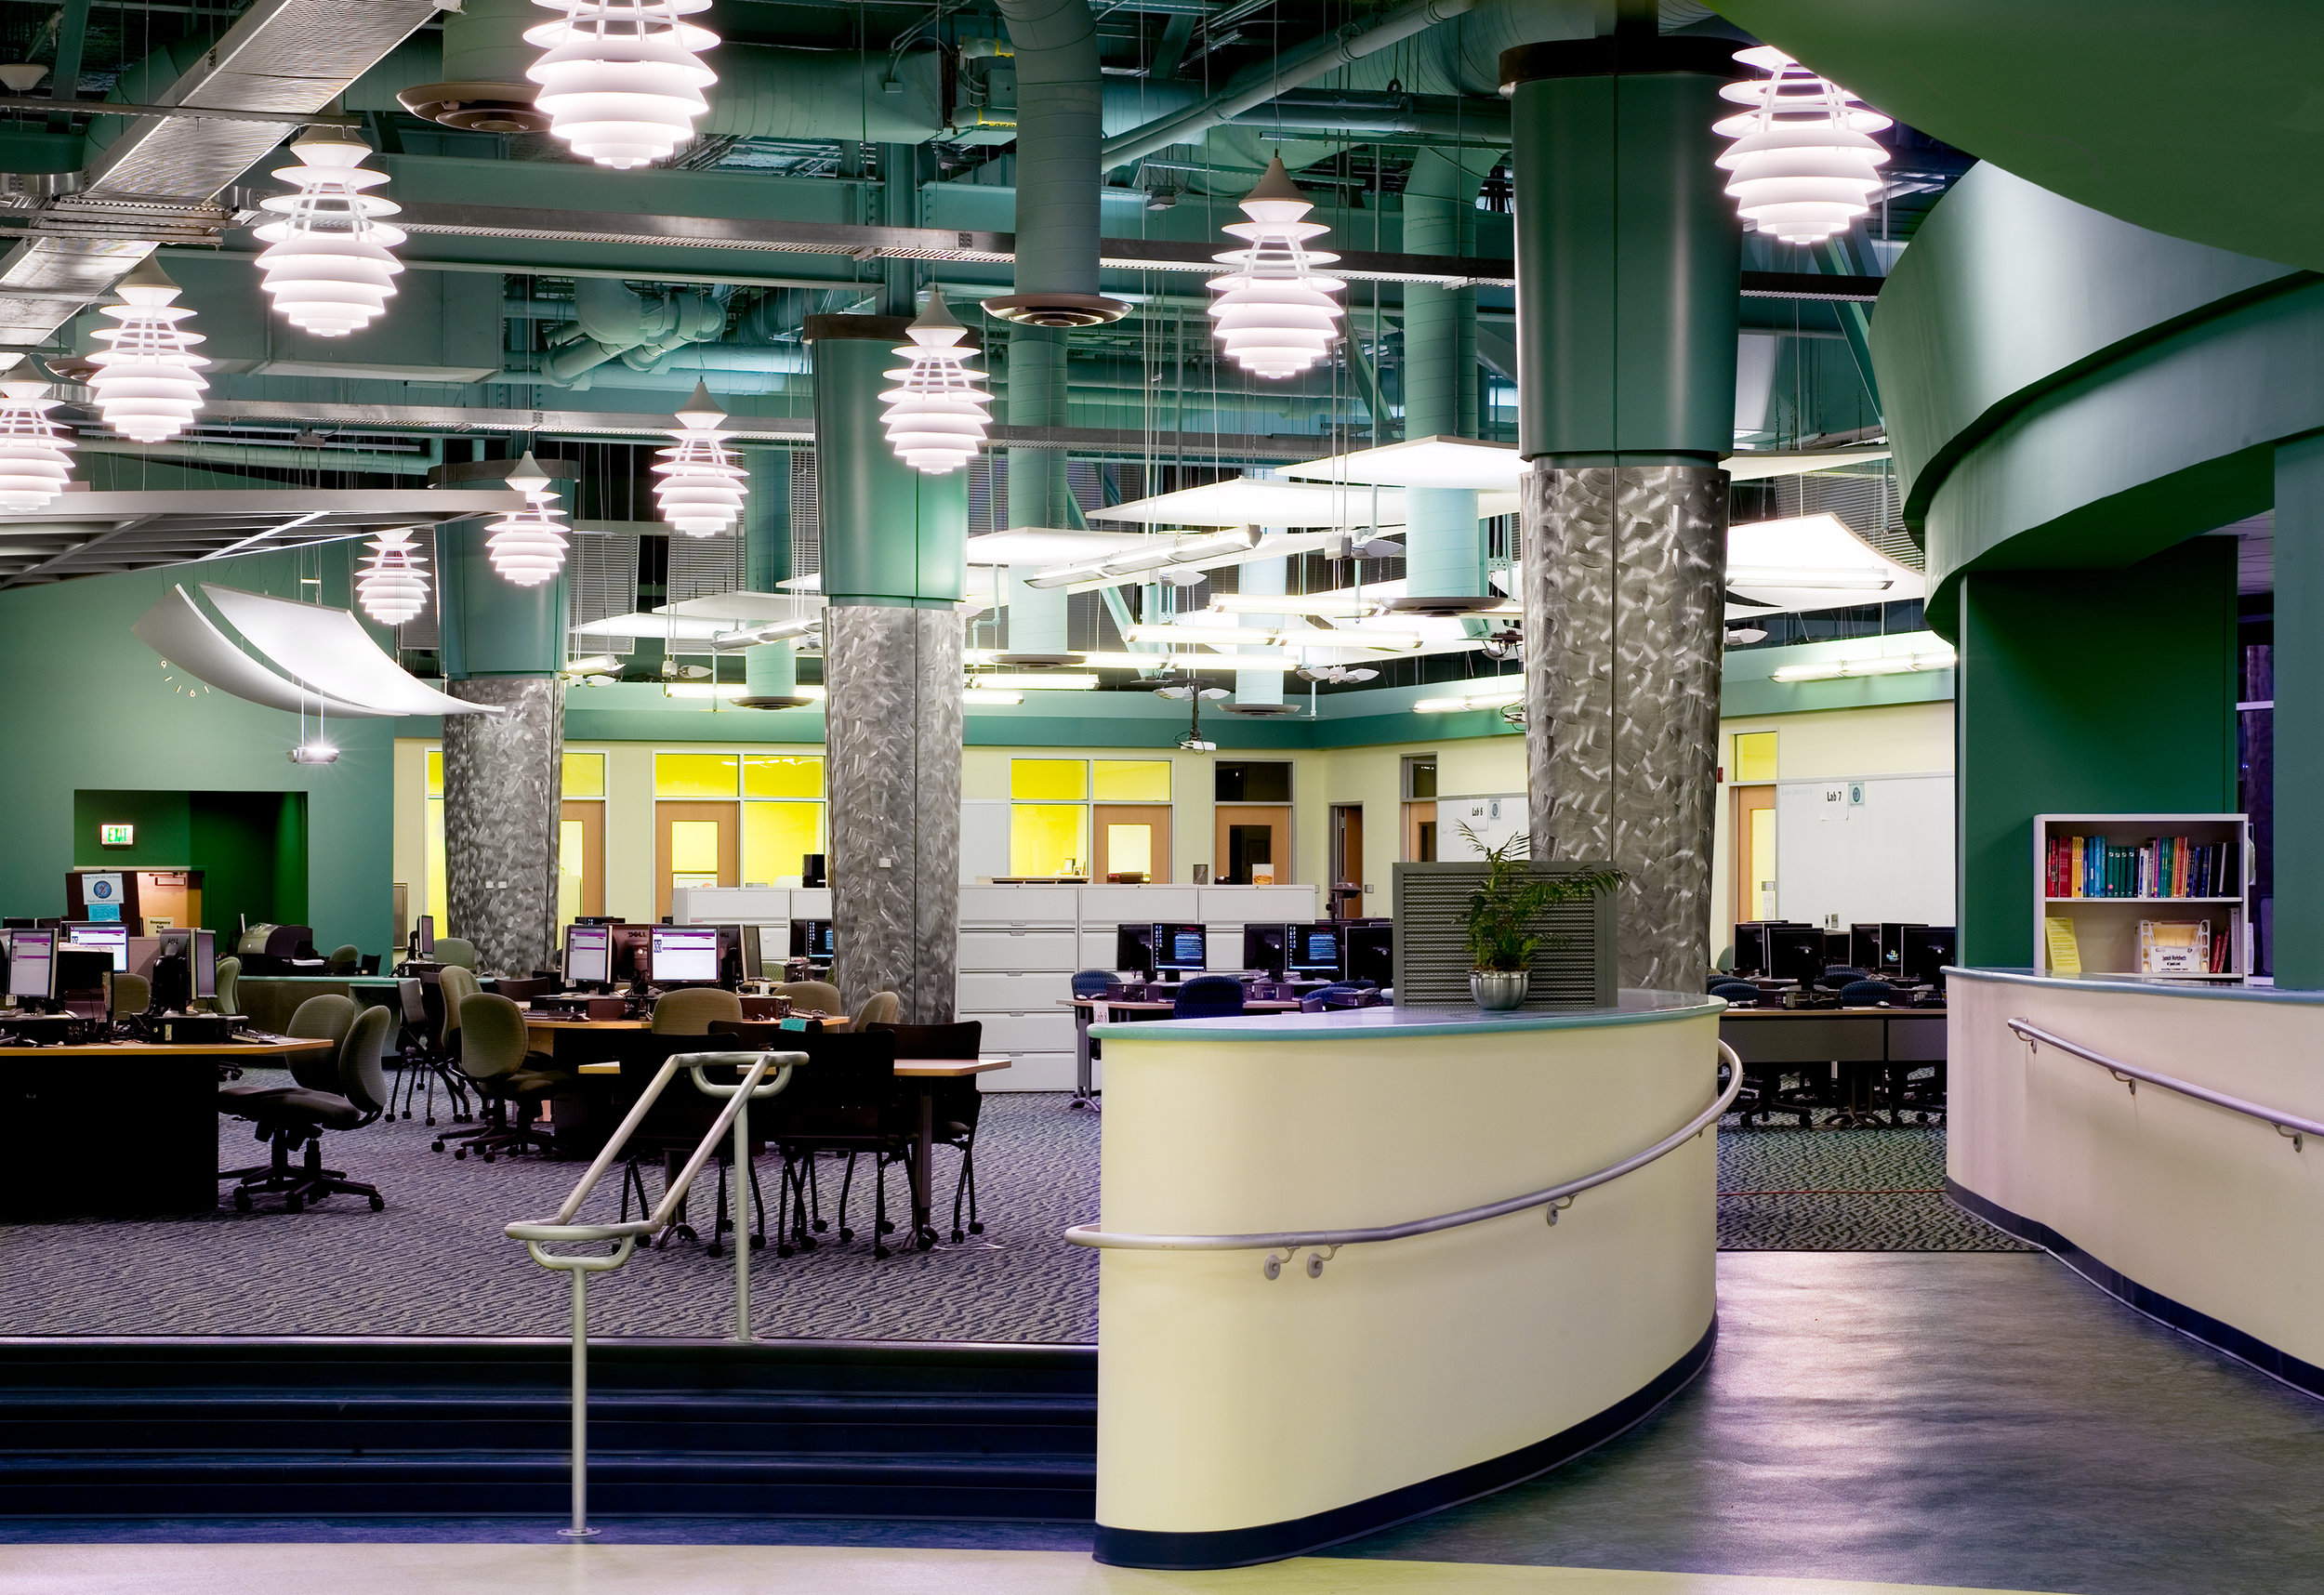 Trident Technical College - Bldg. 920 - Phase III